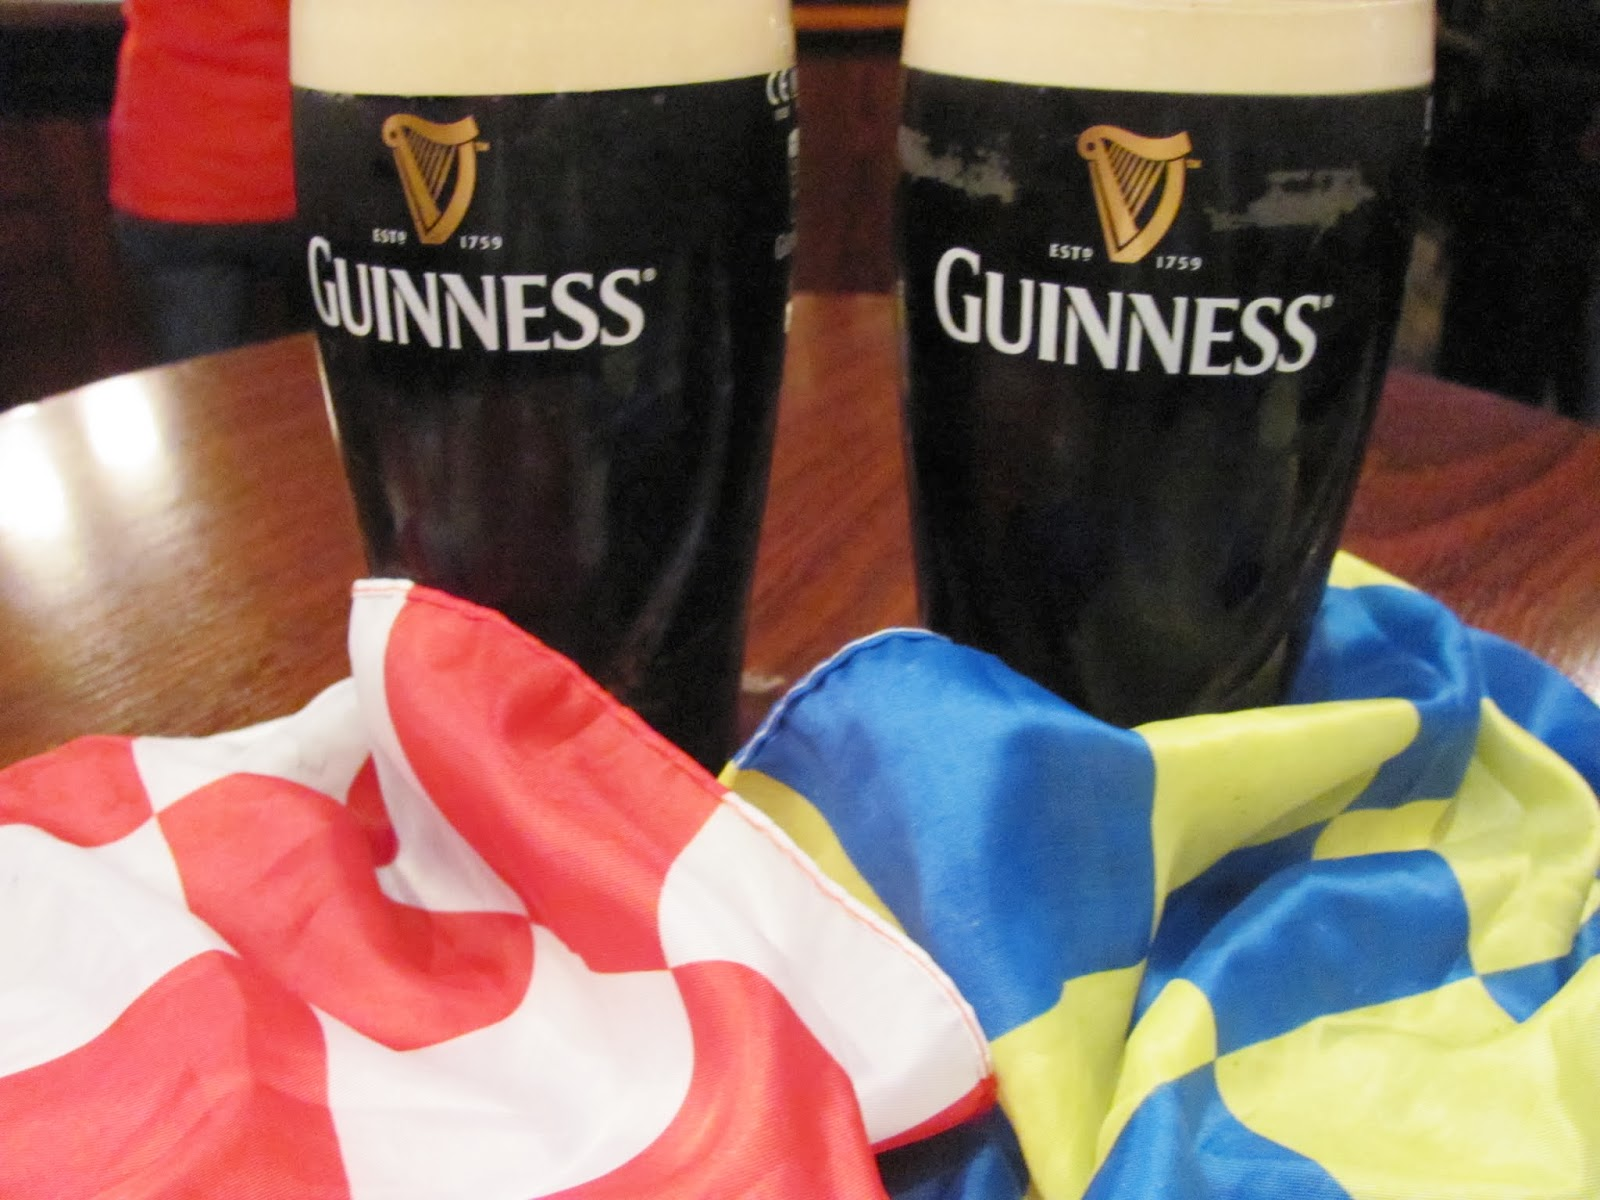 Two flags, red and white for Cork and blue and gold for Clare, sit with two pints of Guinness during the first All-Ireland Hurling Final 2013 in Dublin, Ireland